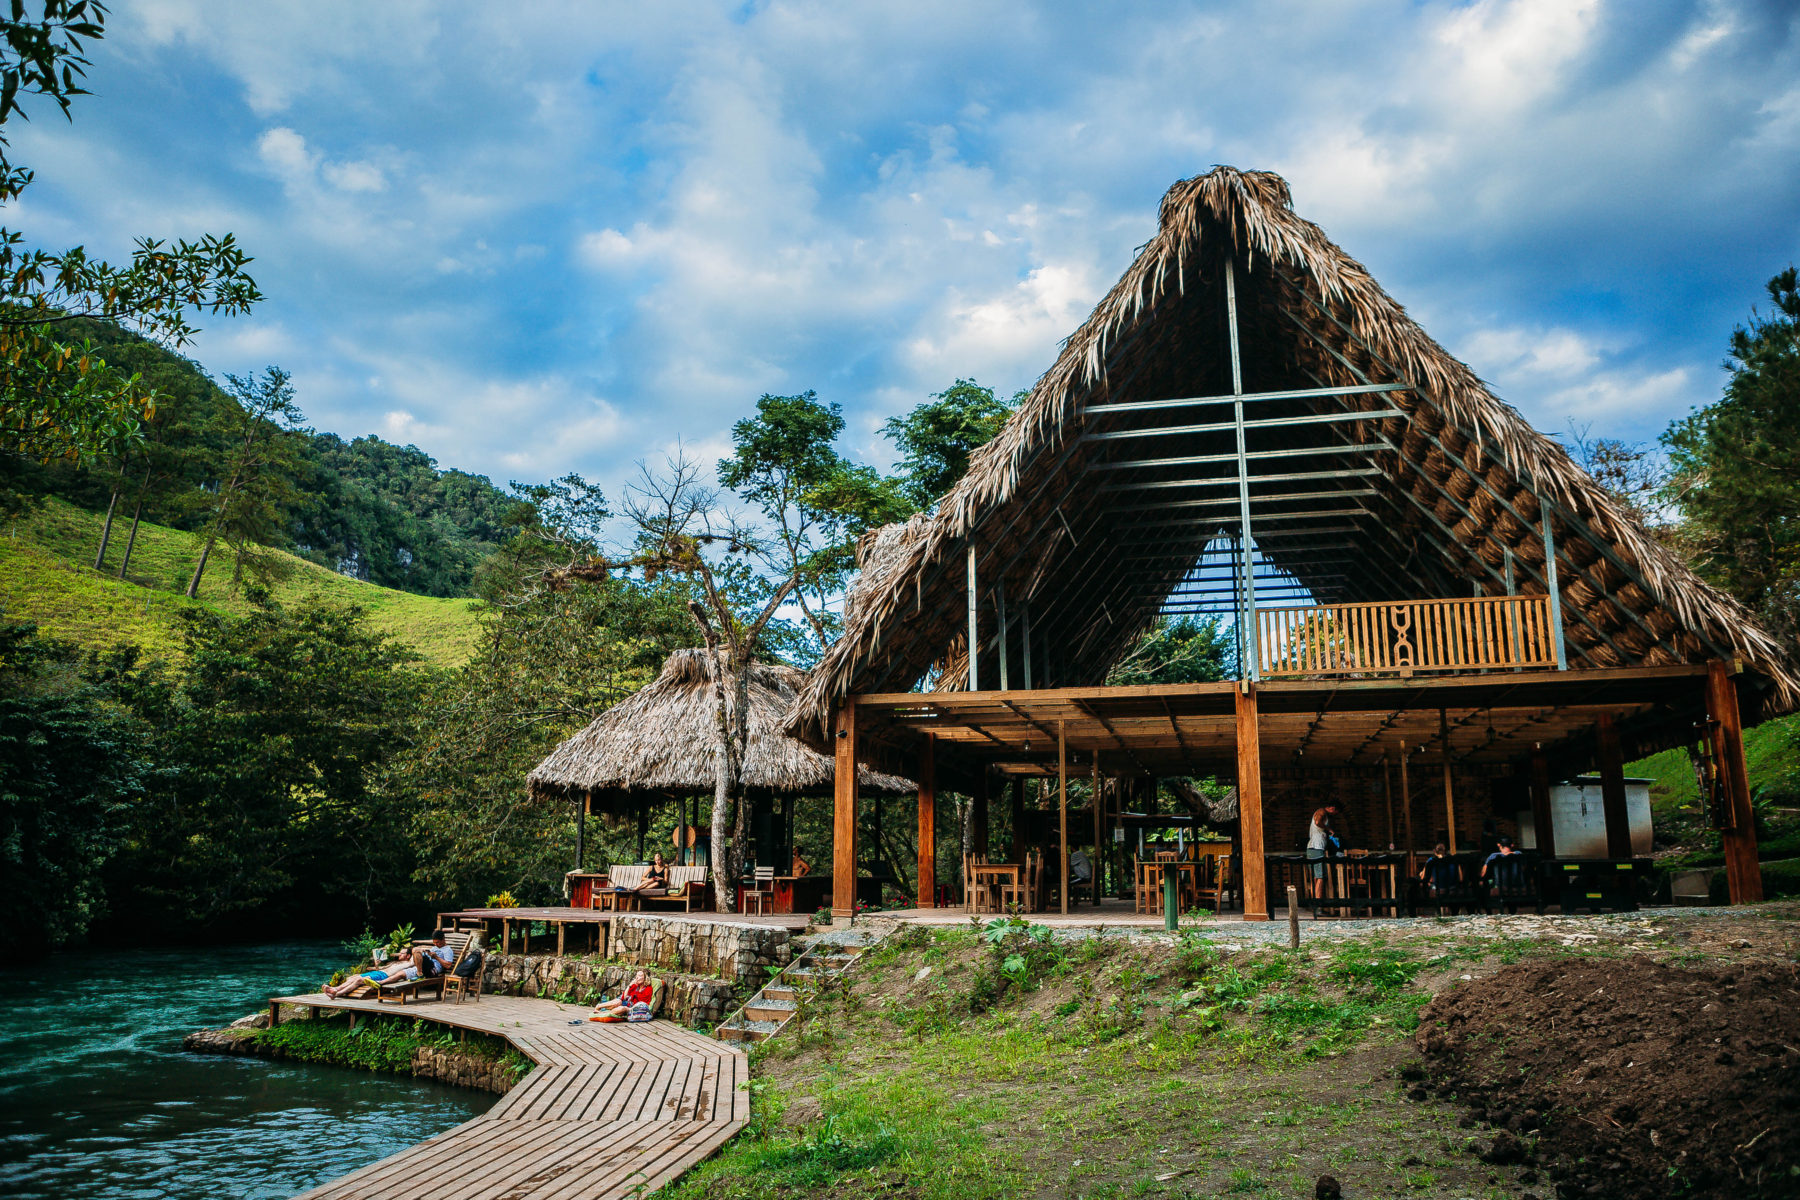 guatemala semuc champey turquoise pools jungle green humid swim adventure far away hidden paradise el retiro lodge in the jungle